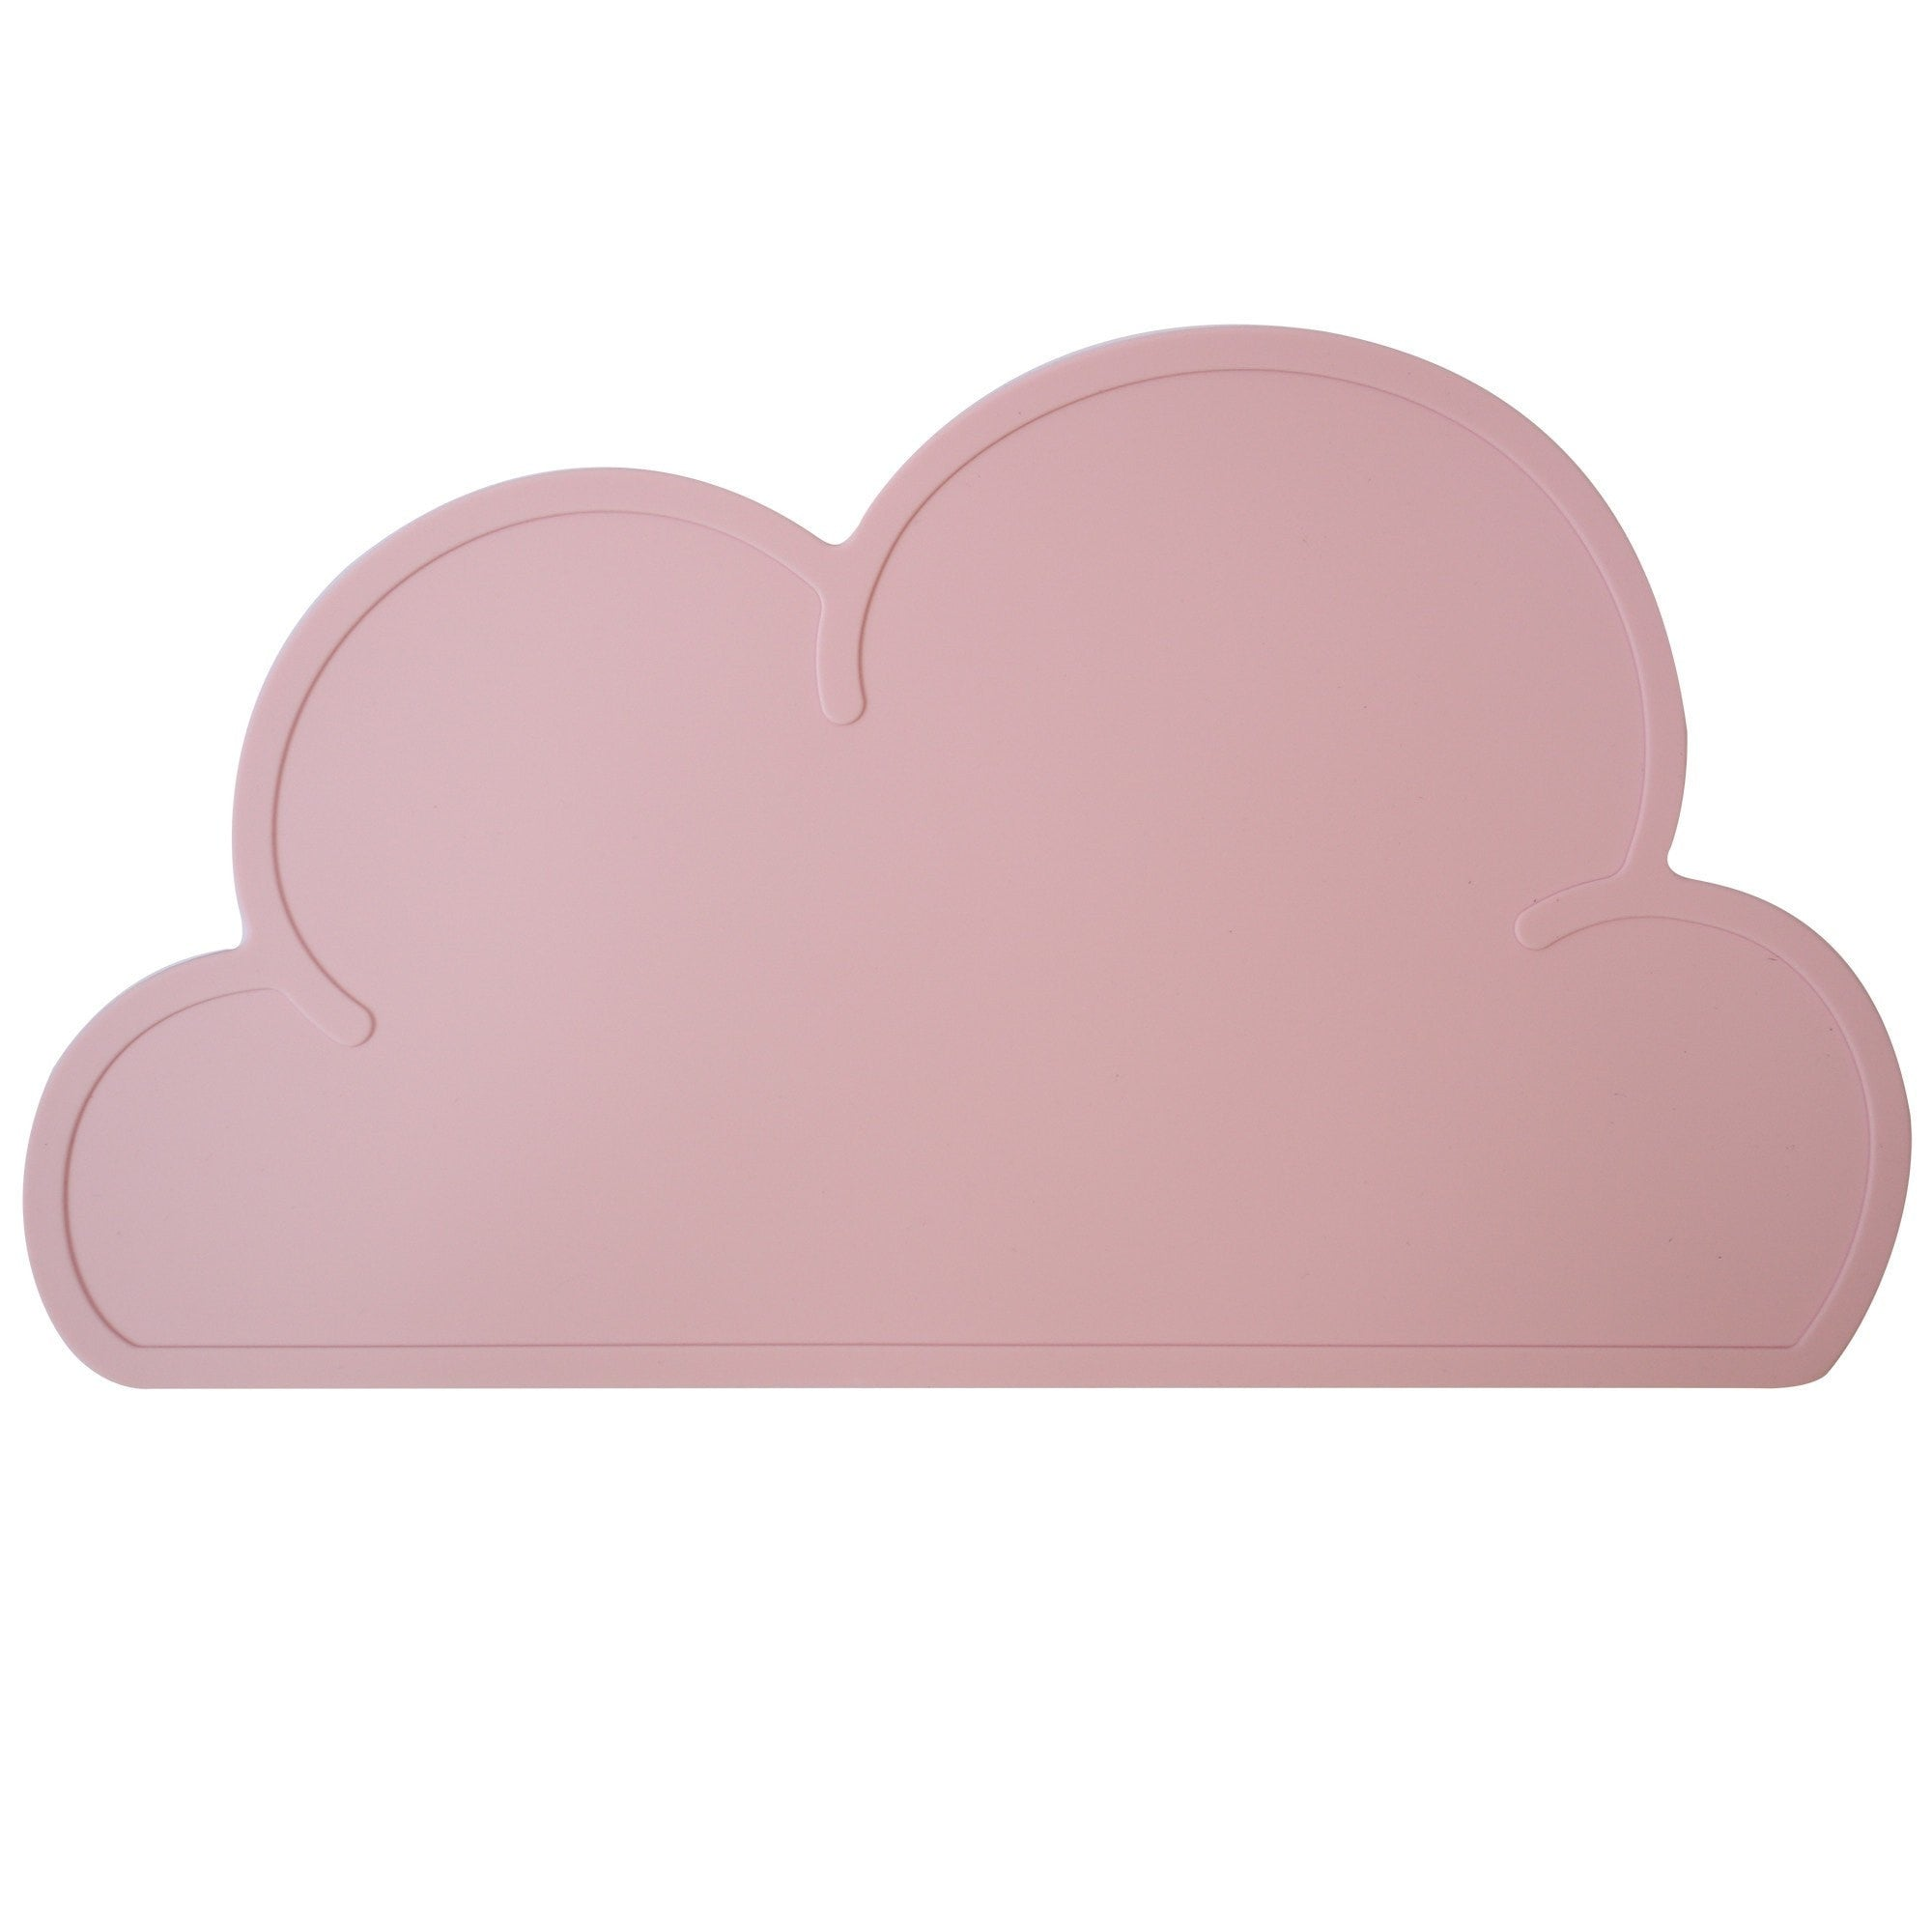 PINK CLOUD PLACEMAT - iDecorate